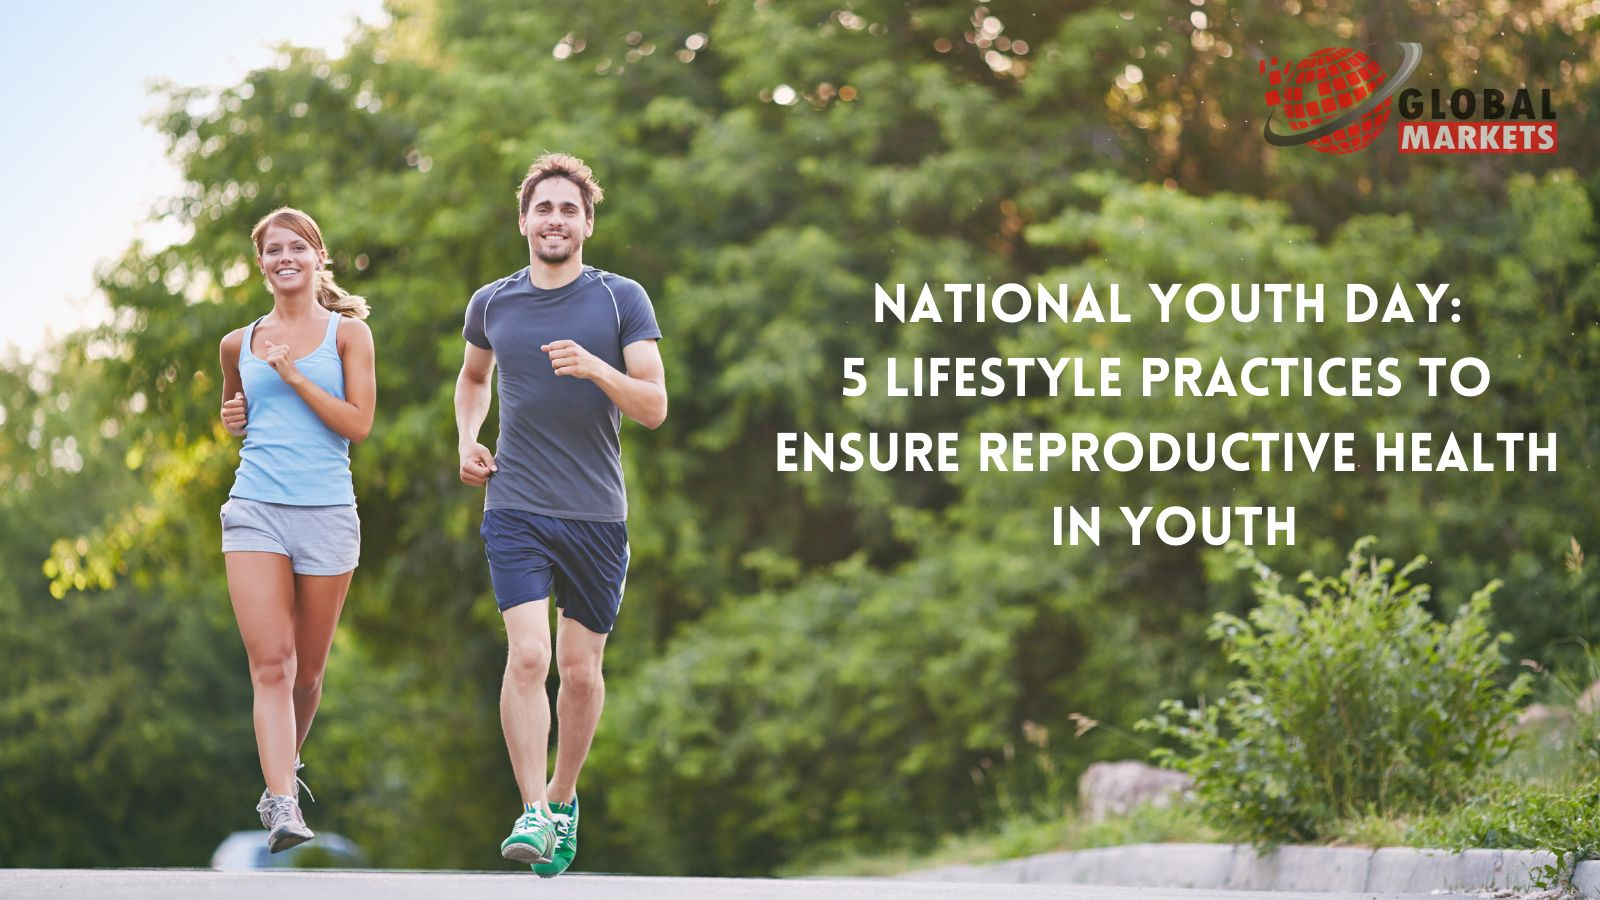 National Youth Day: 5 lifestyle practices to ensure reproductive health in youth